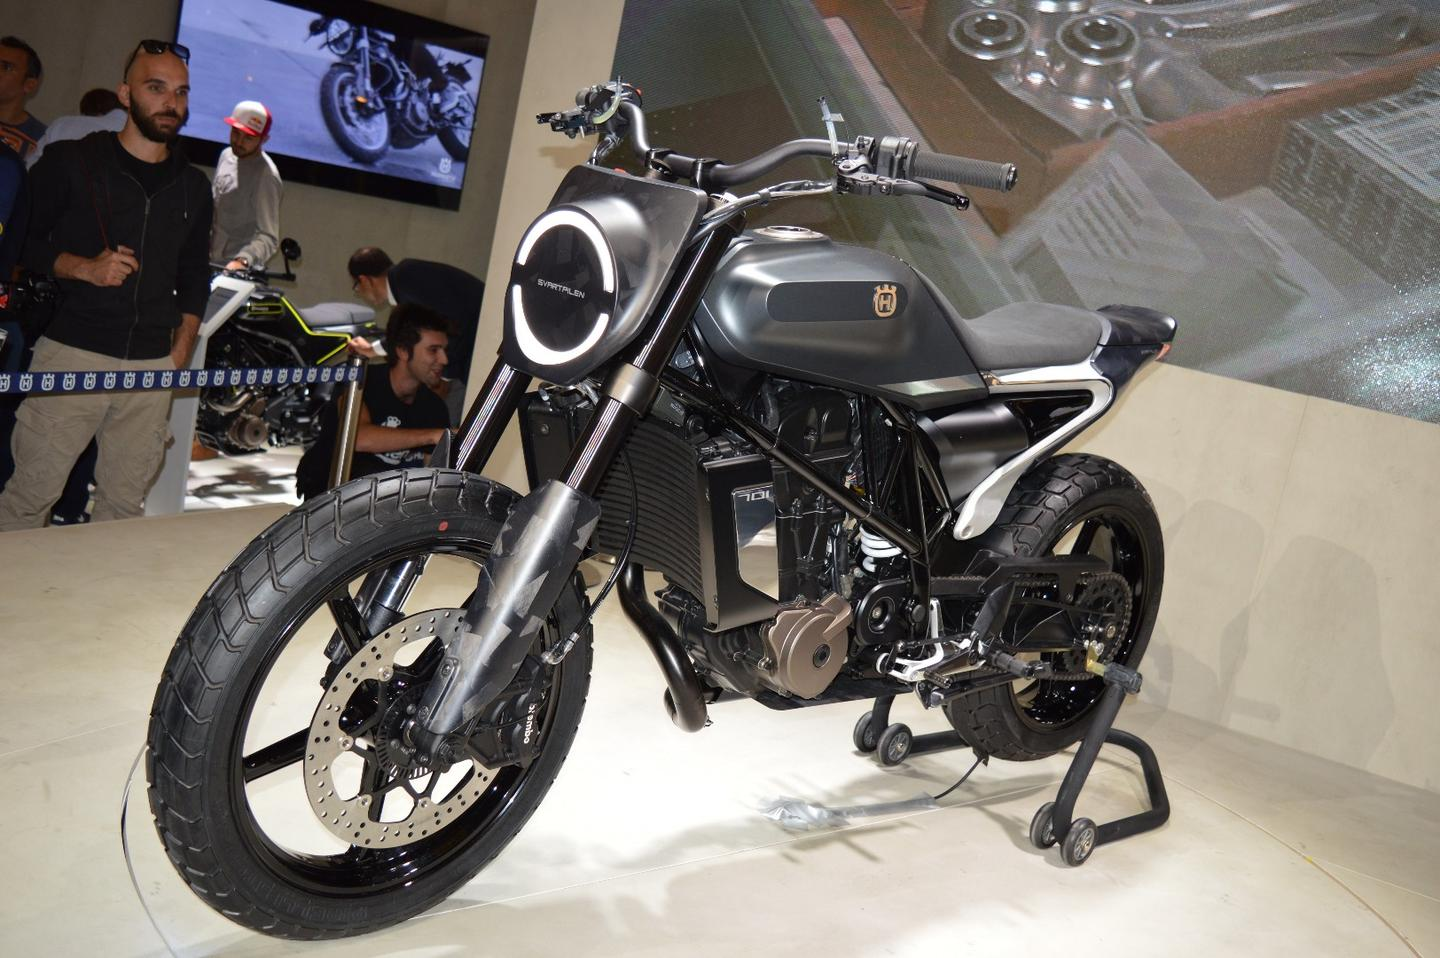 The Svartpilen 701 flat-tracker concept at EICMA 2017